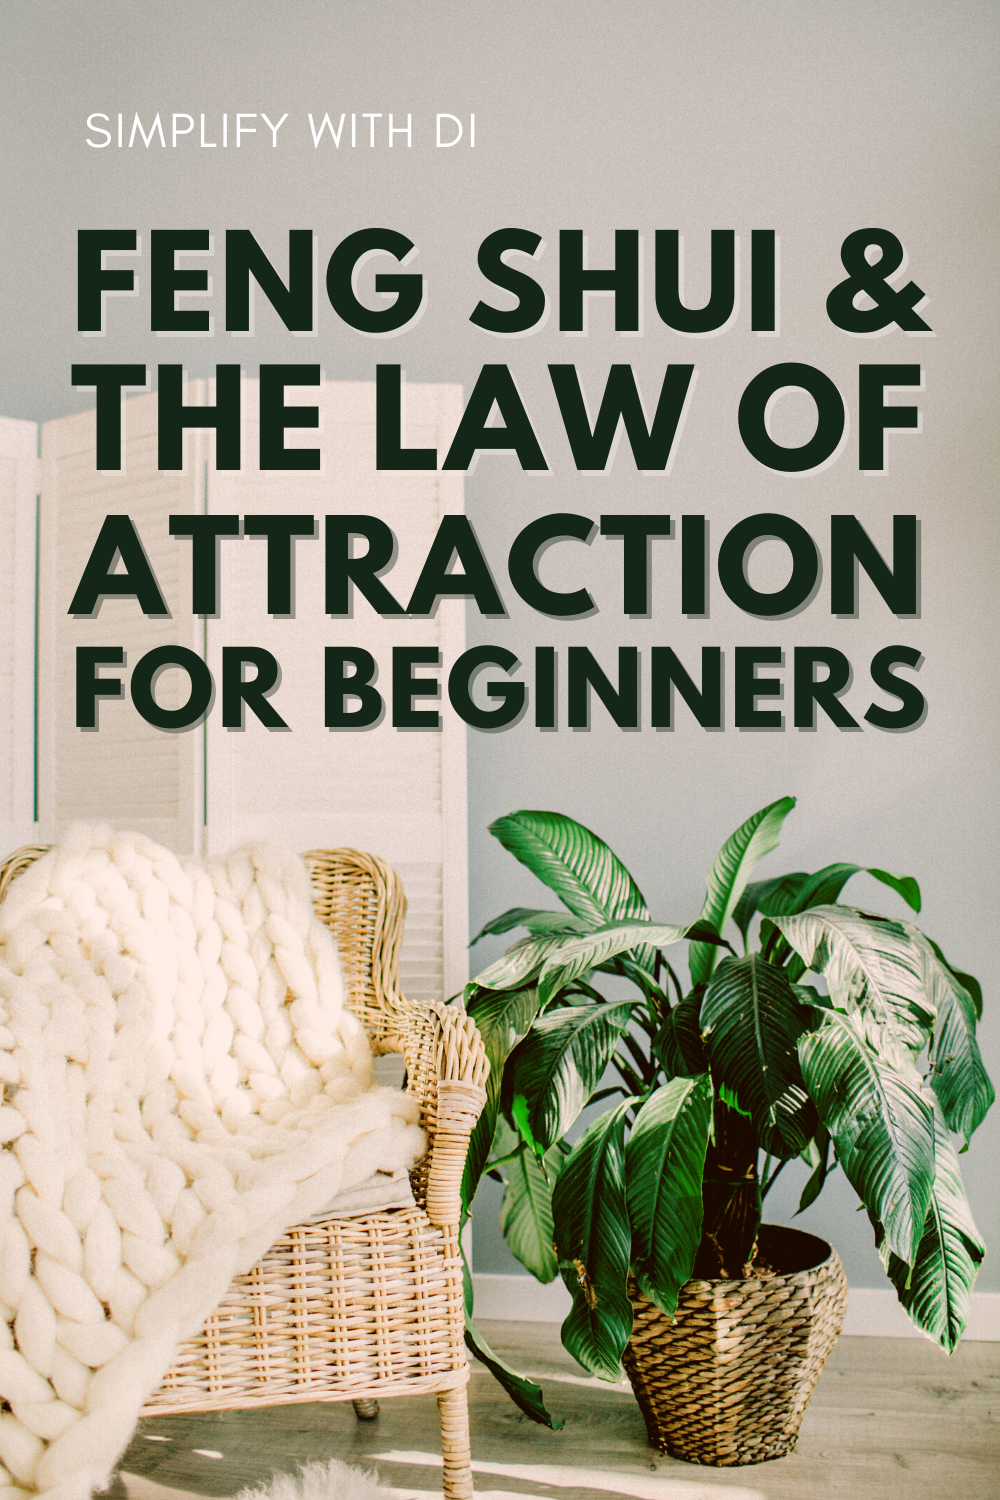 Feng Shui and the Law of Attraction for Beginners - Simplify With Di